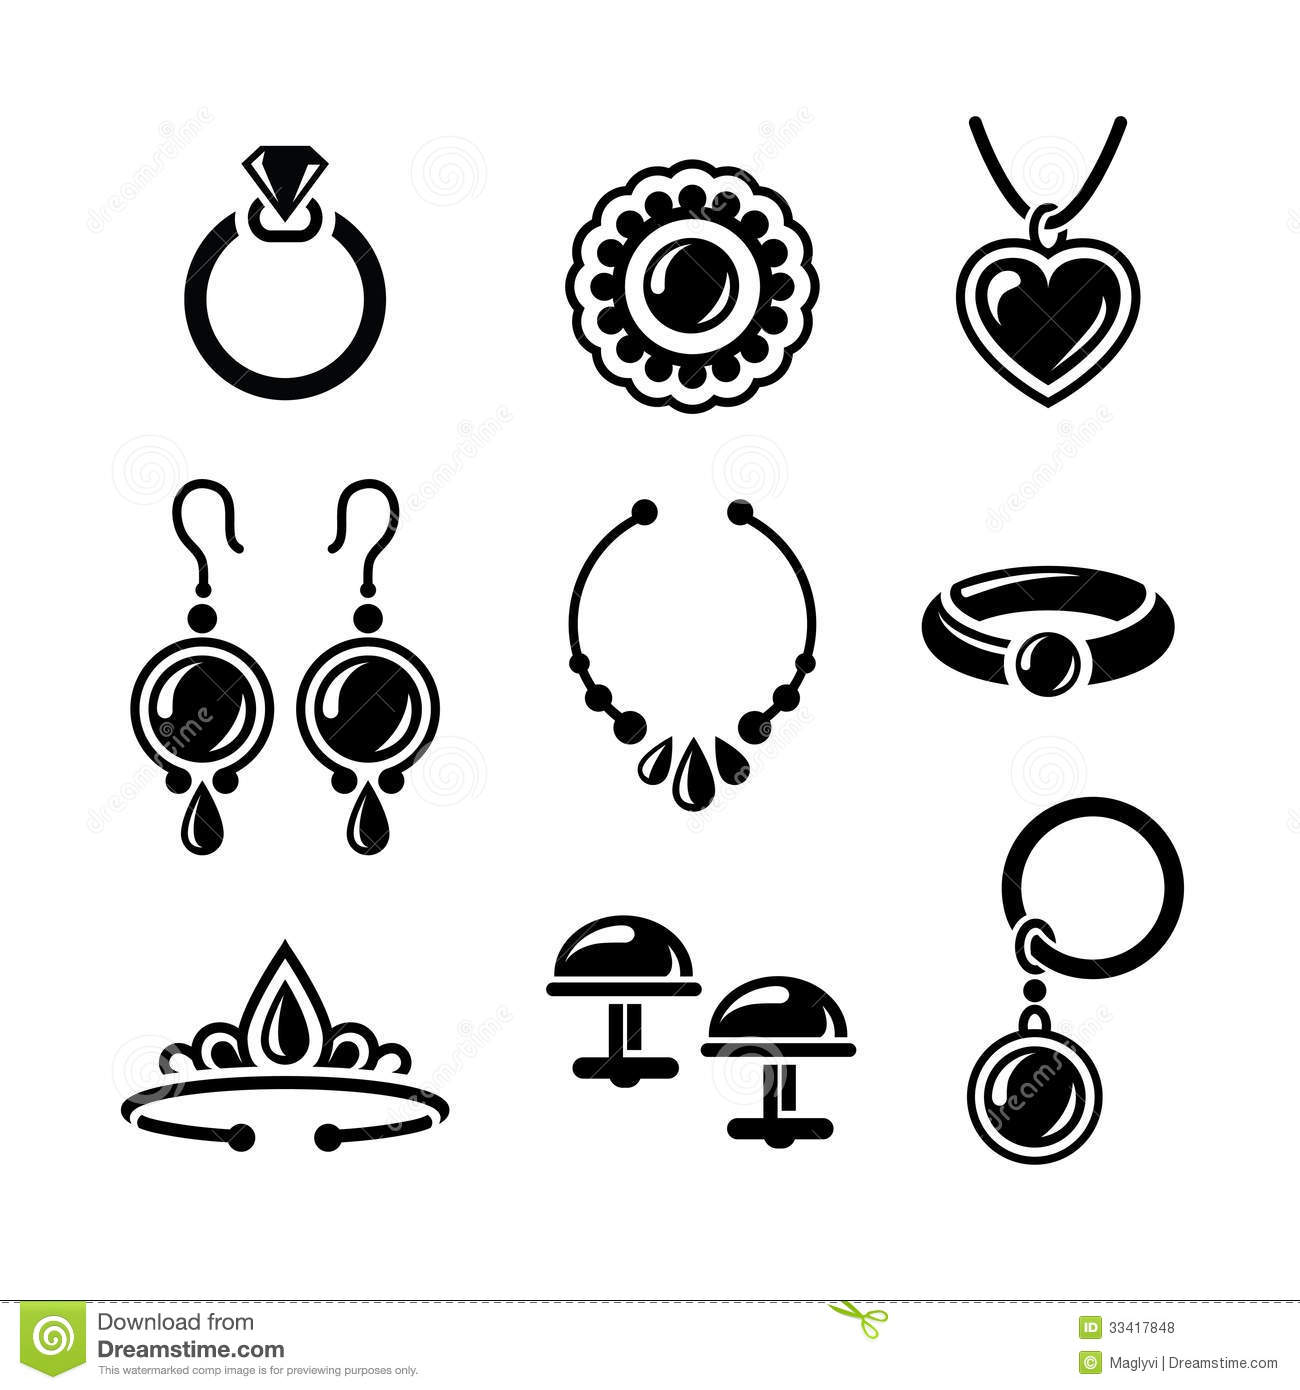 Jewelry clipart Clipart Clipart Savoronmorehead Collection clipart